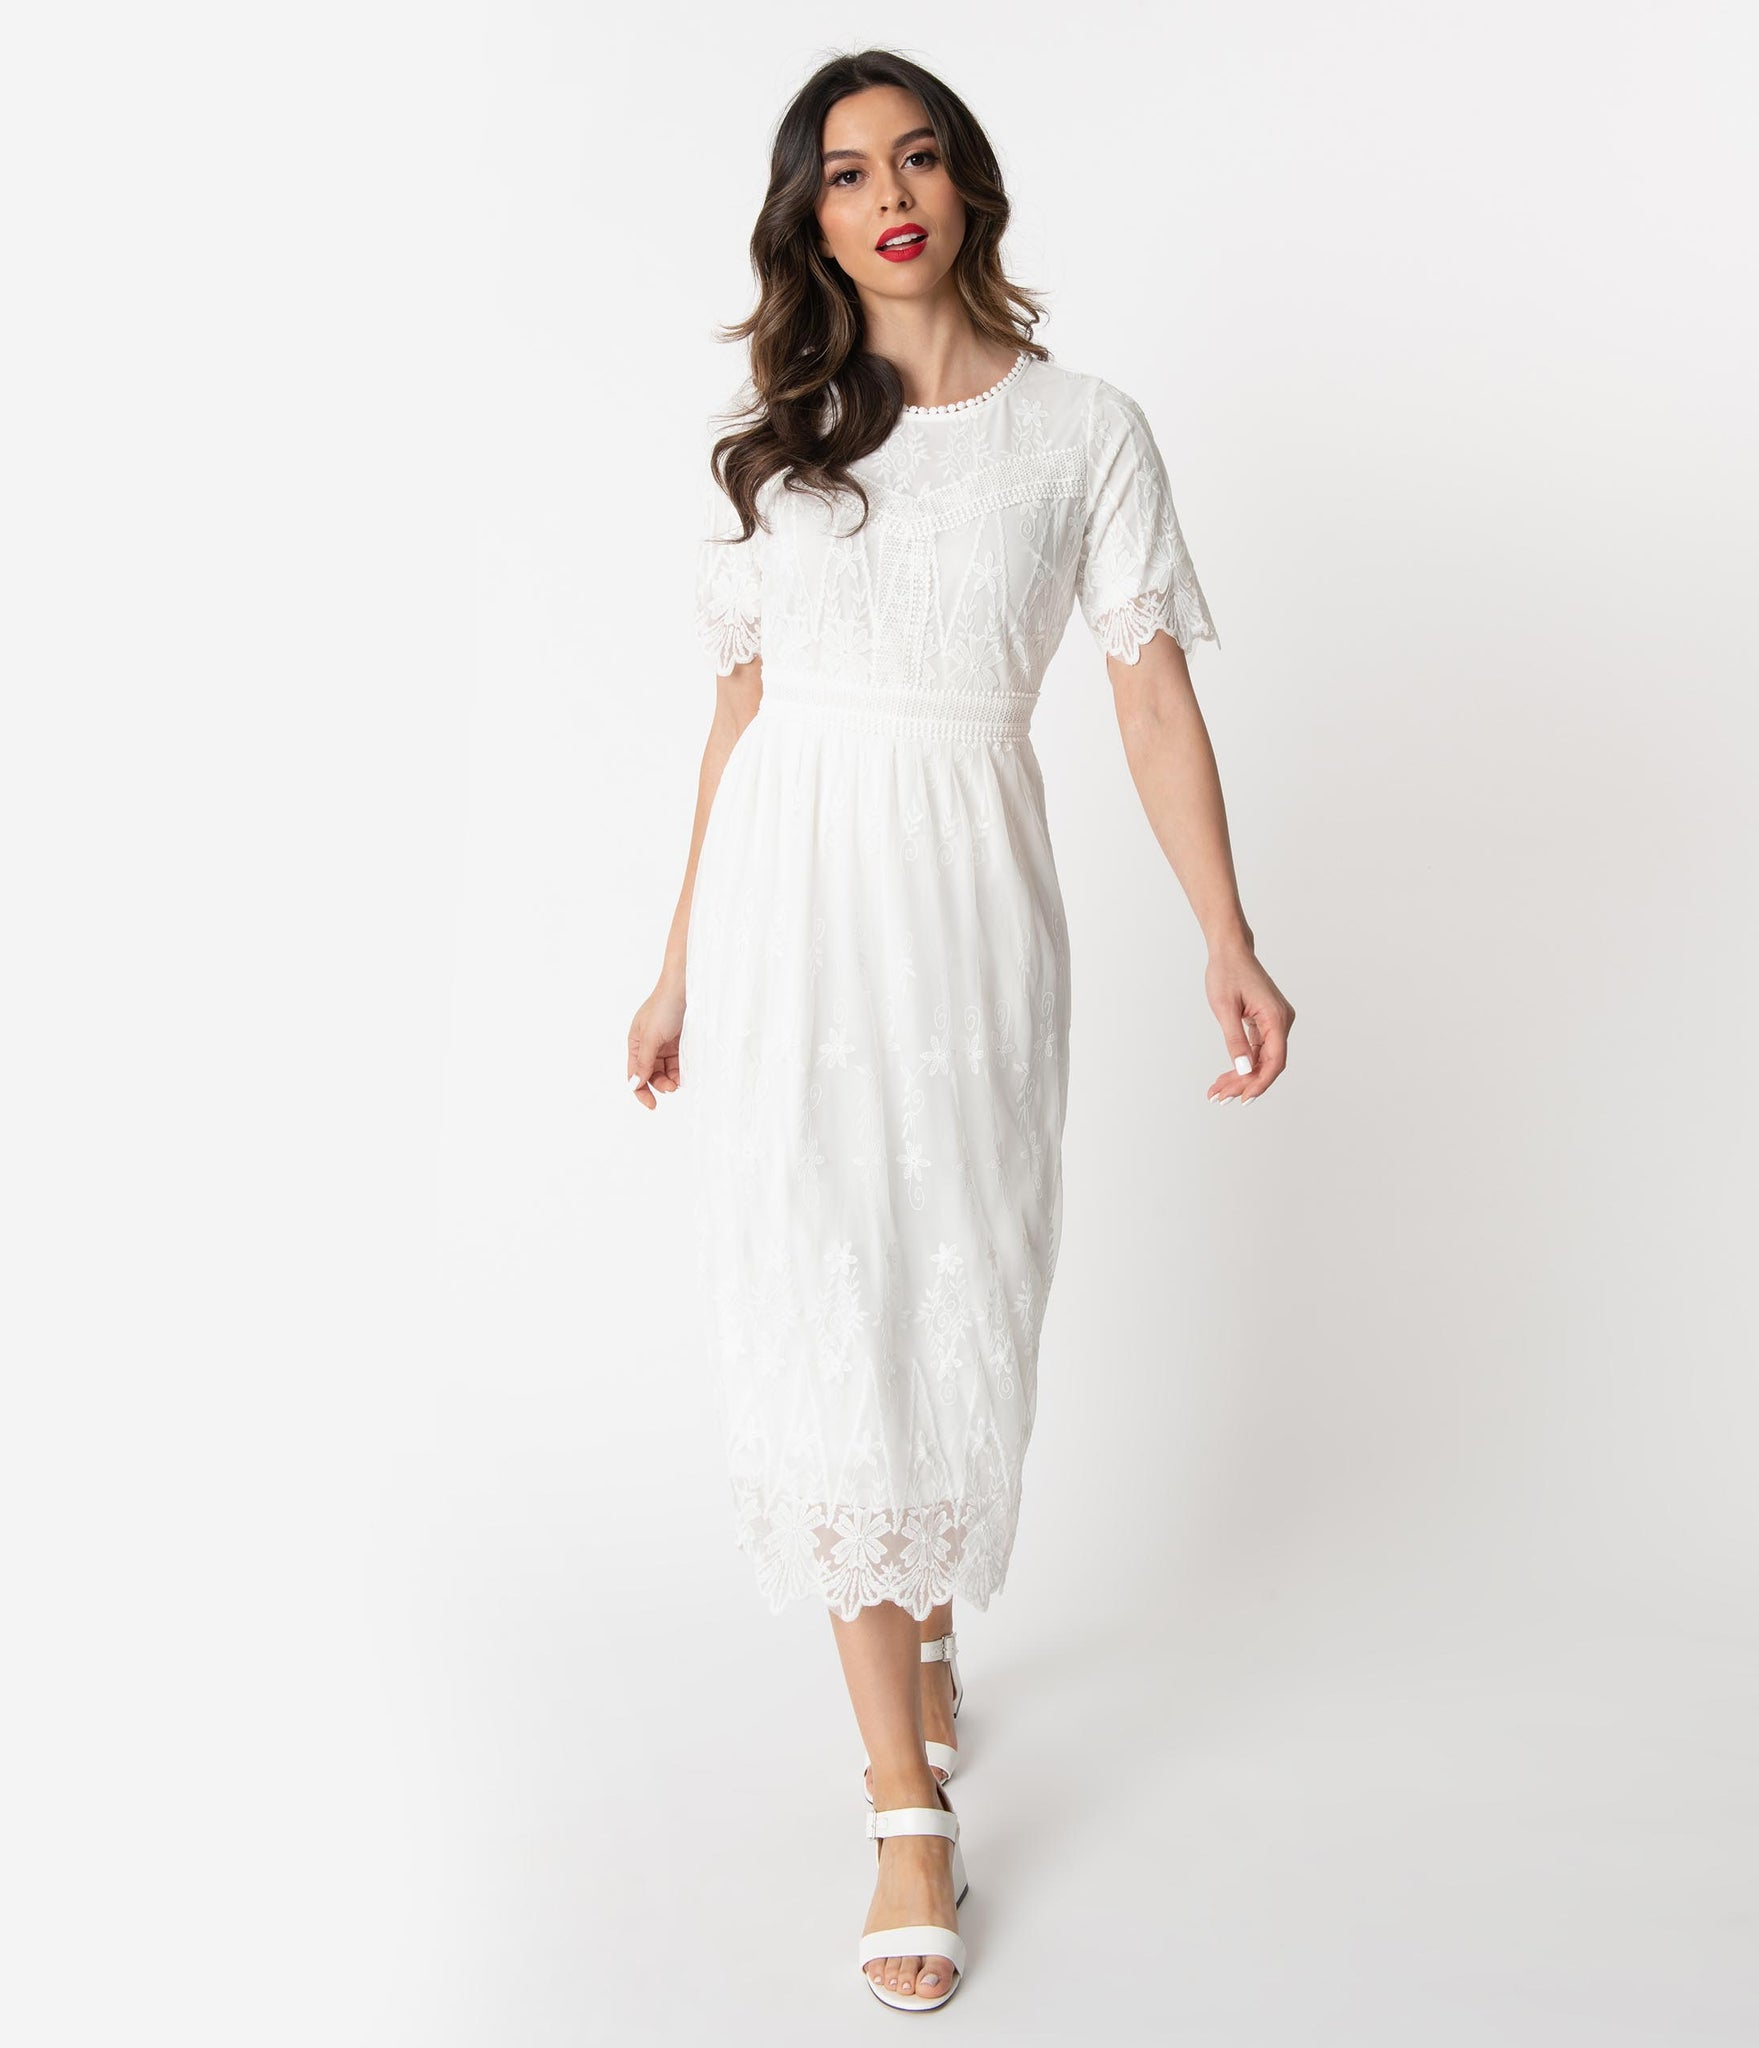 Old Fashioned Dresses | Old Dress Styles Vintage Style Ivory Embroidered Mesh Midi Dress $52.00 AT vintagedancer.com